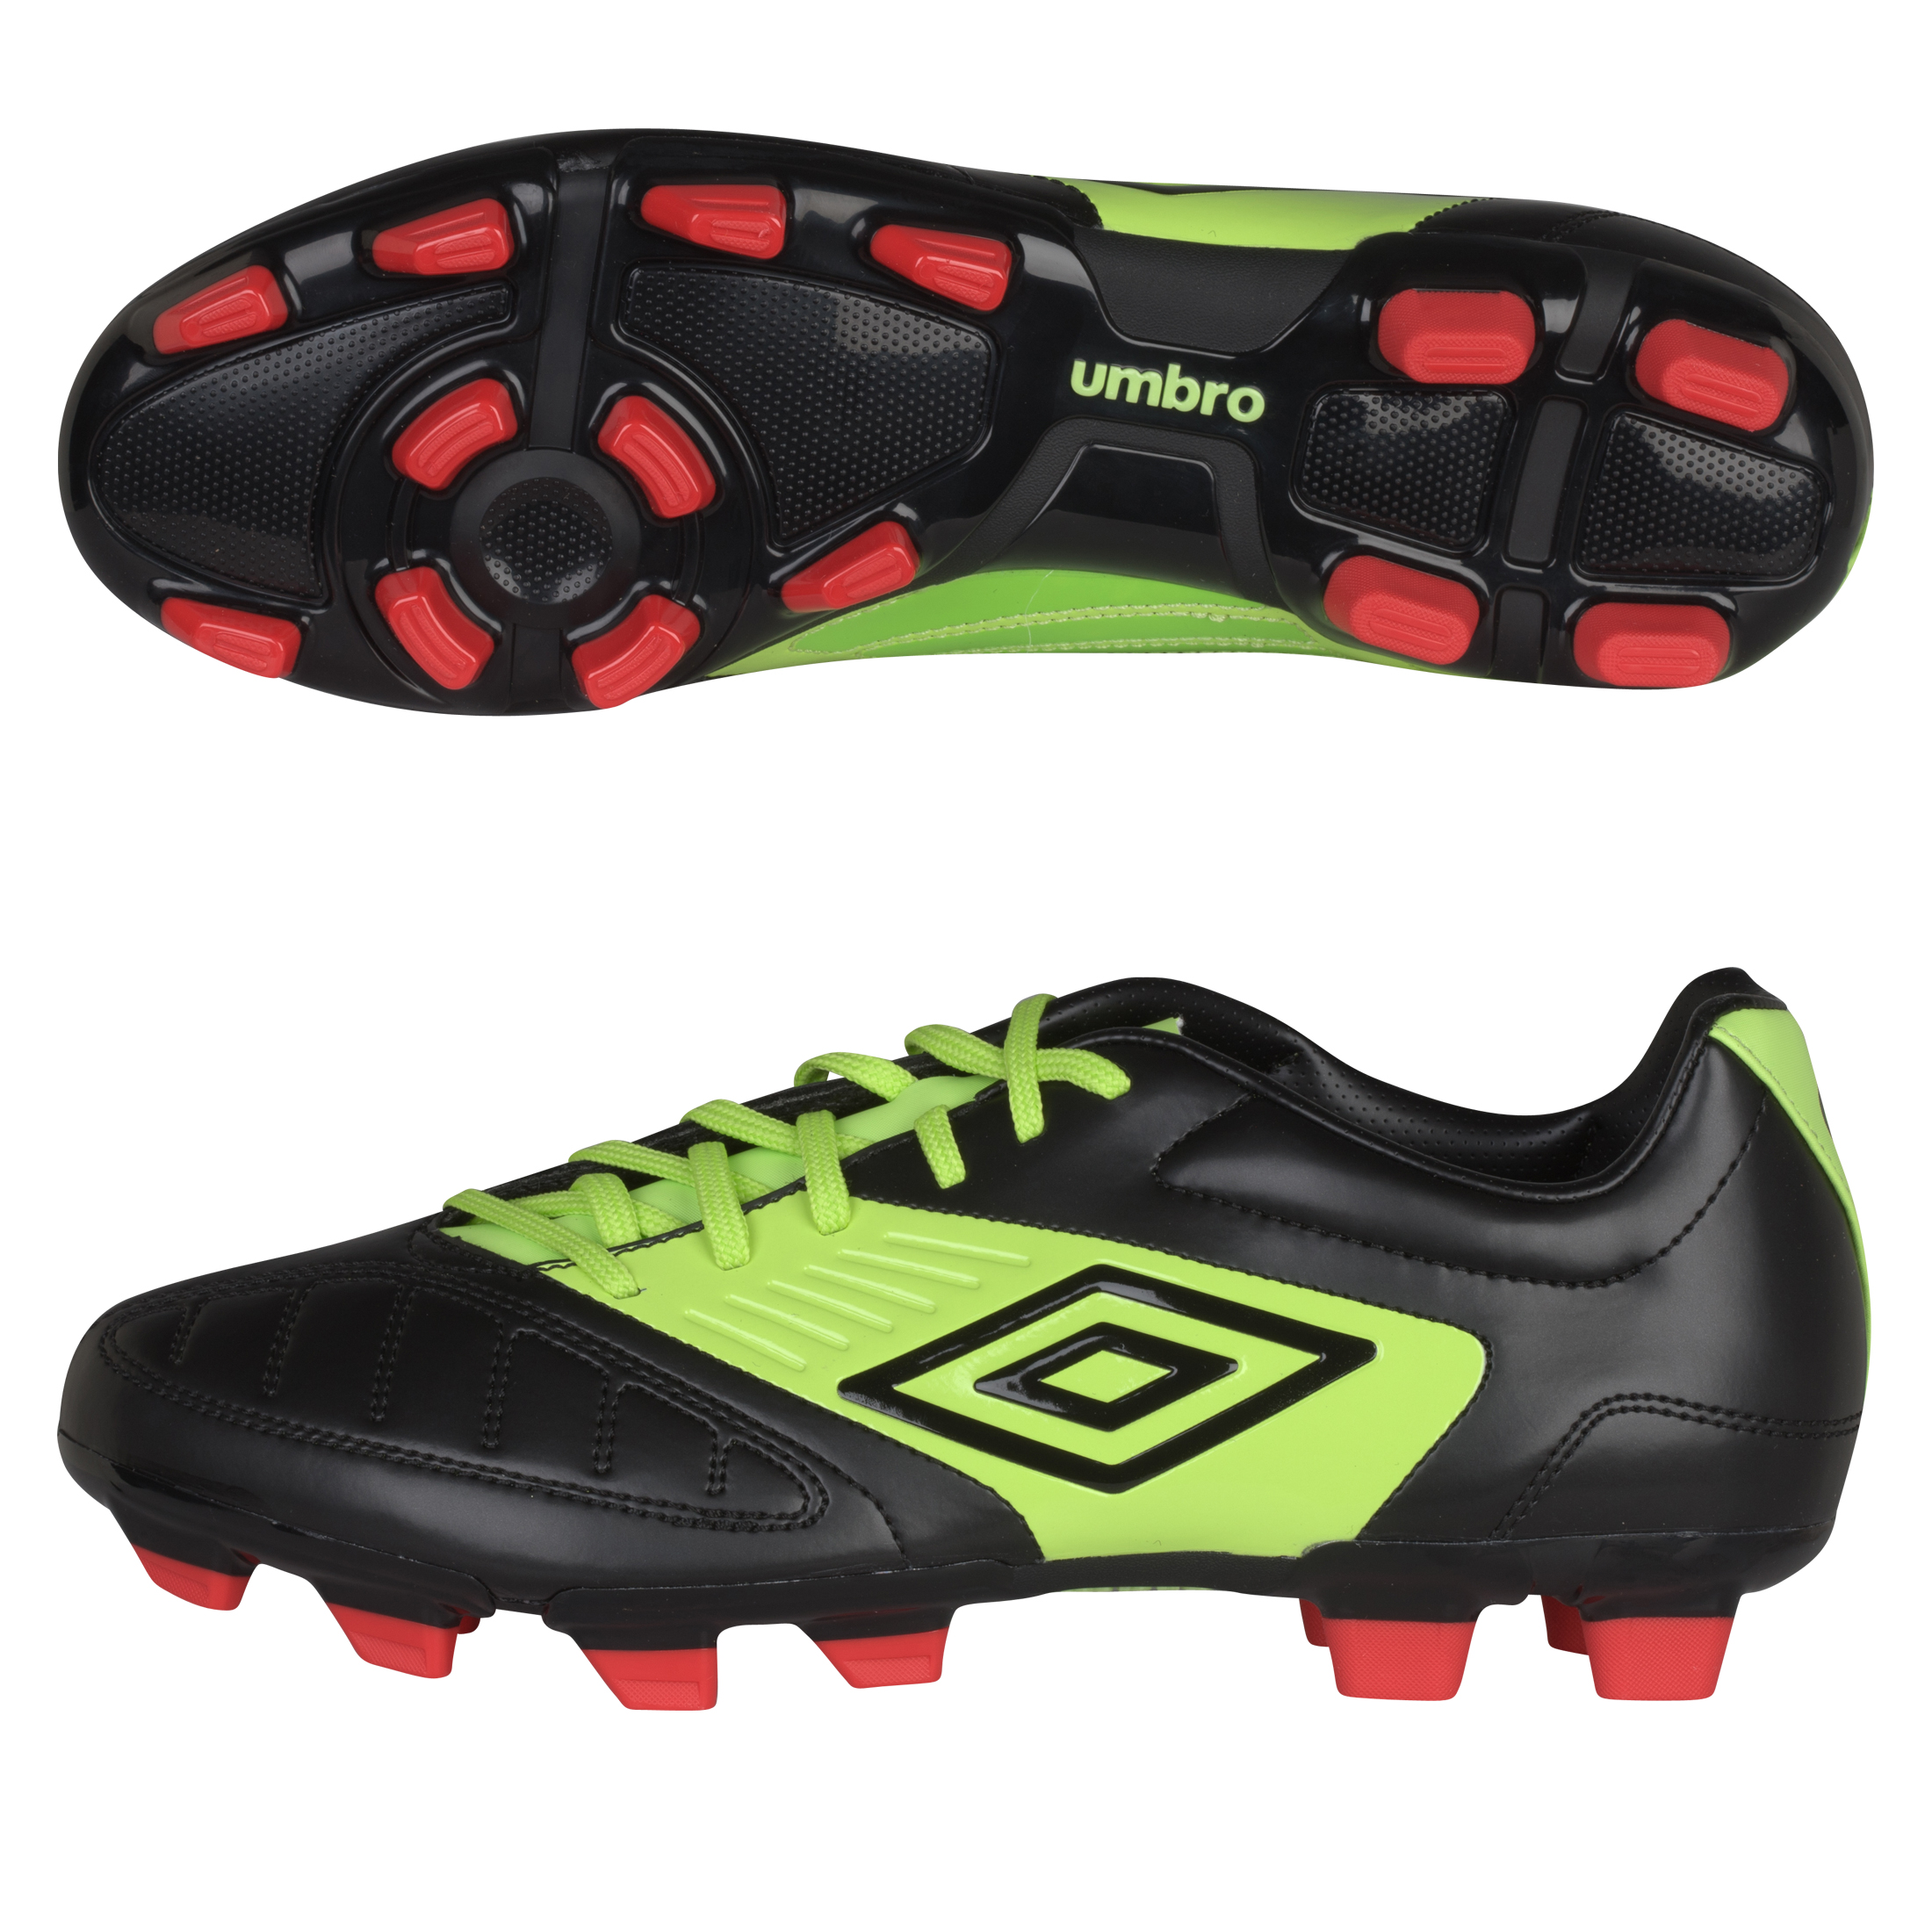 Geometra Cup FG Black/White/Sharp Green/True Red